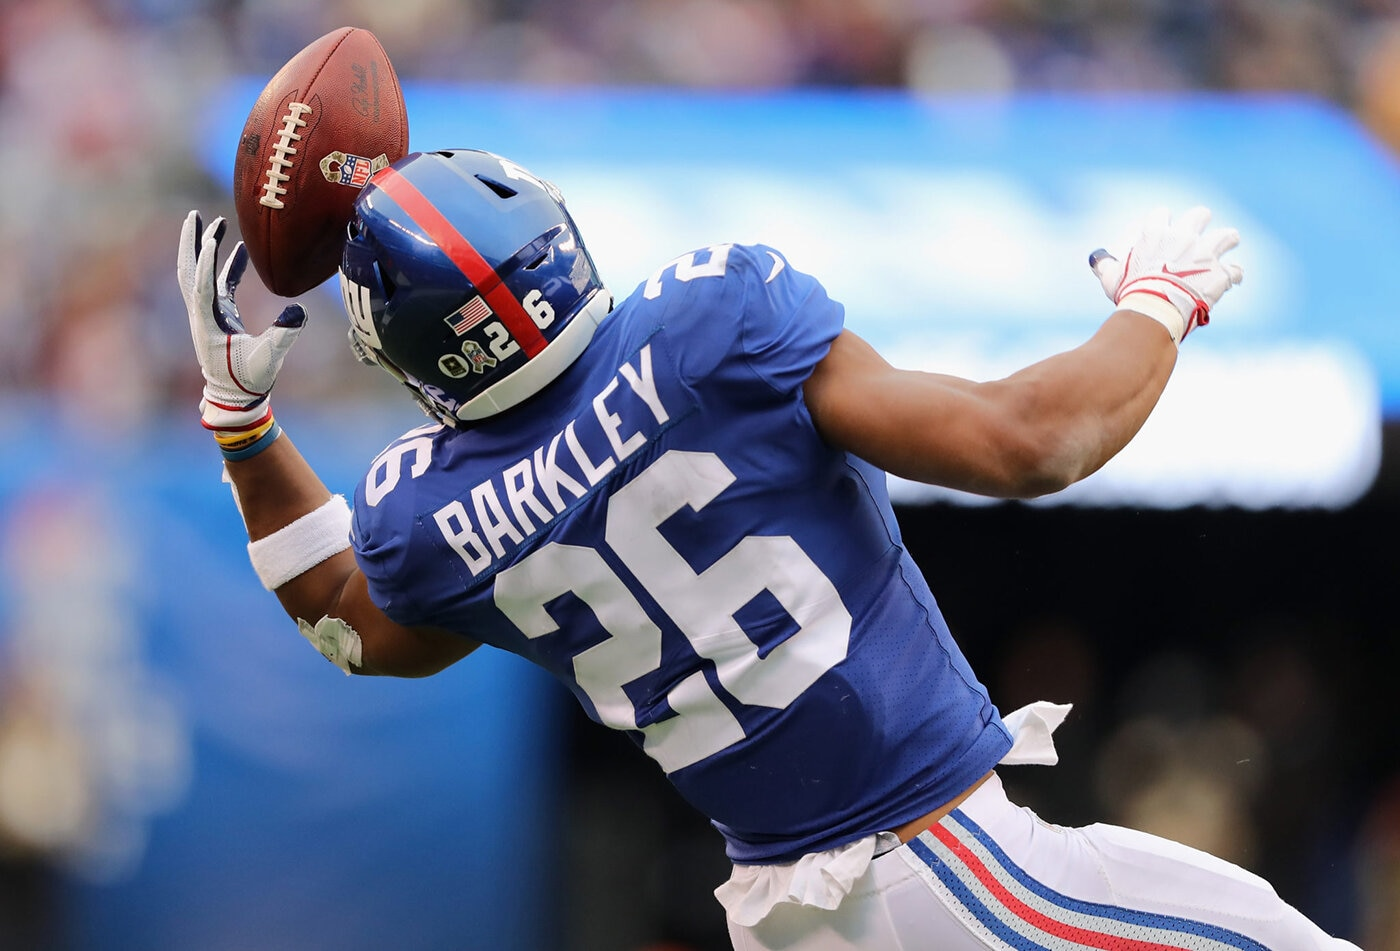 The New York Giants had an abysmal season opener against the Pittsburgh Steelers, and the stats are pointing out Saquon Barkley is the weak link.